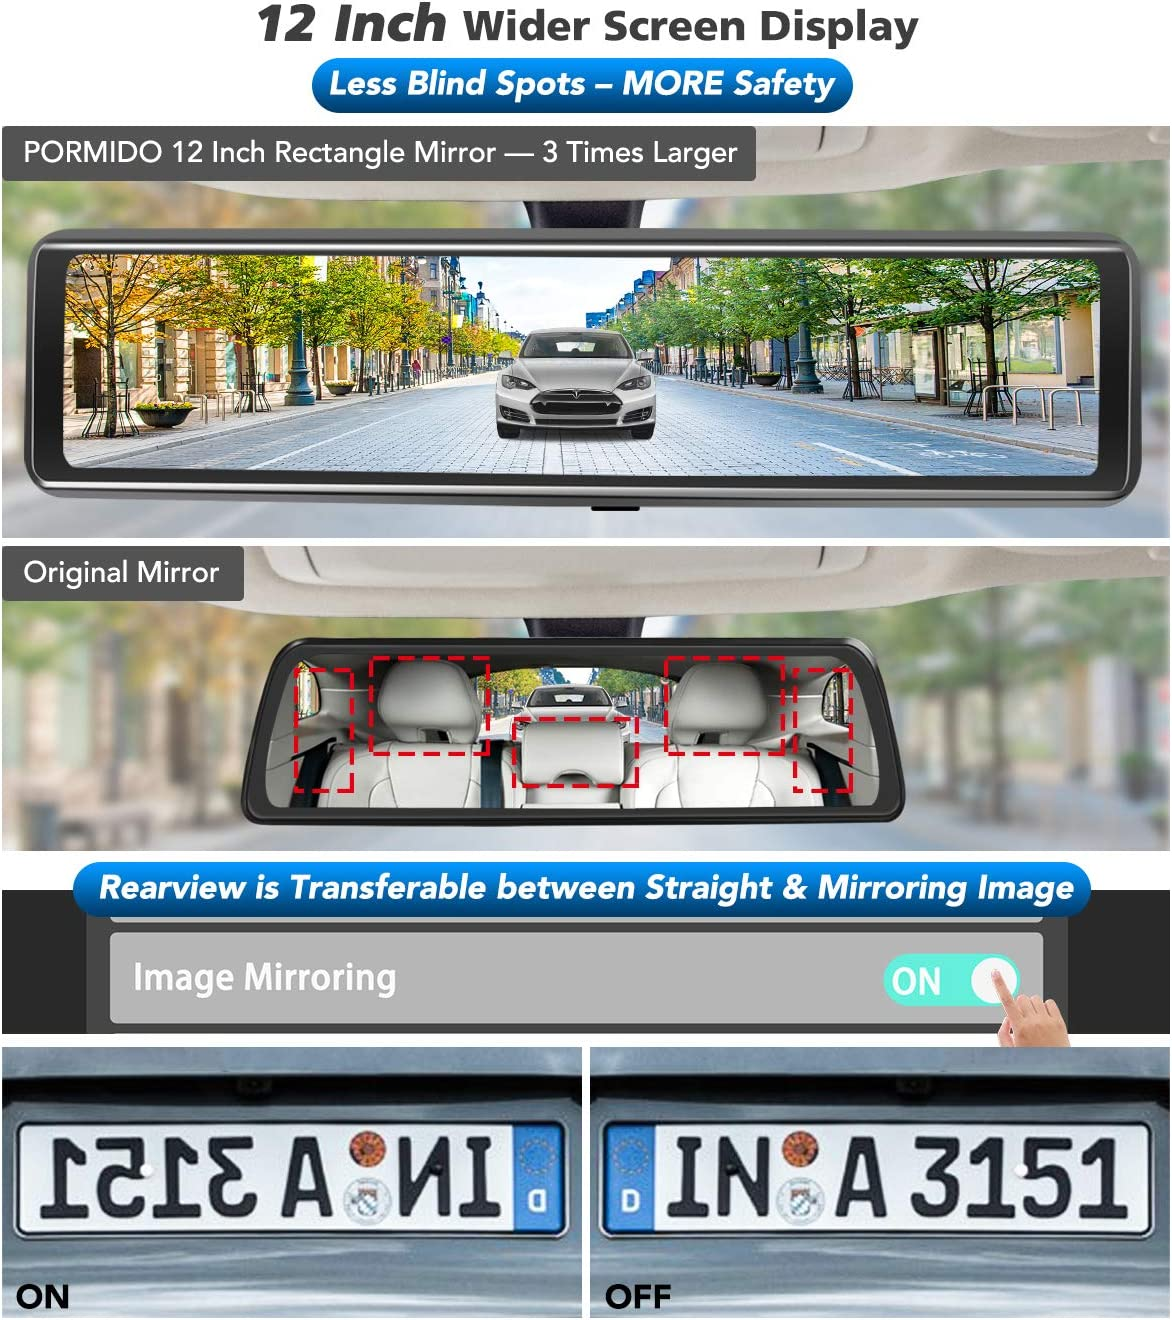 PORMIDO Mirror Dash Cam Front and Rear View Reverse Car Camera,12 Inch Dual Dashcam with Detached Front Camera 360 degree,Anti Glare Full Touch Screen HD1920P,Sony Lens,Night Vision,Parking Monitoring